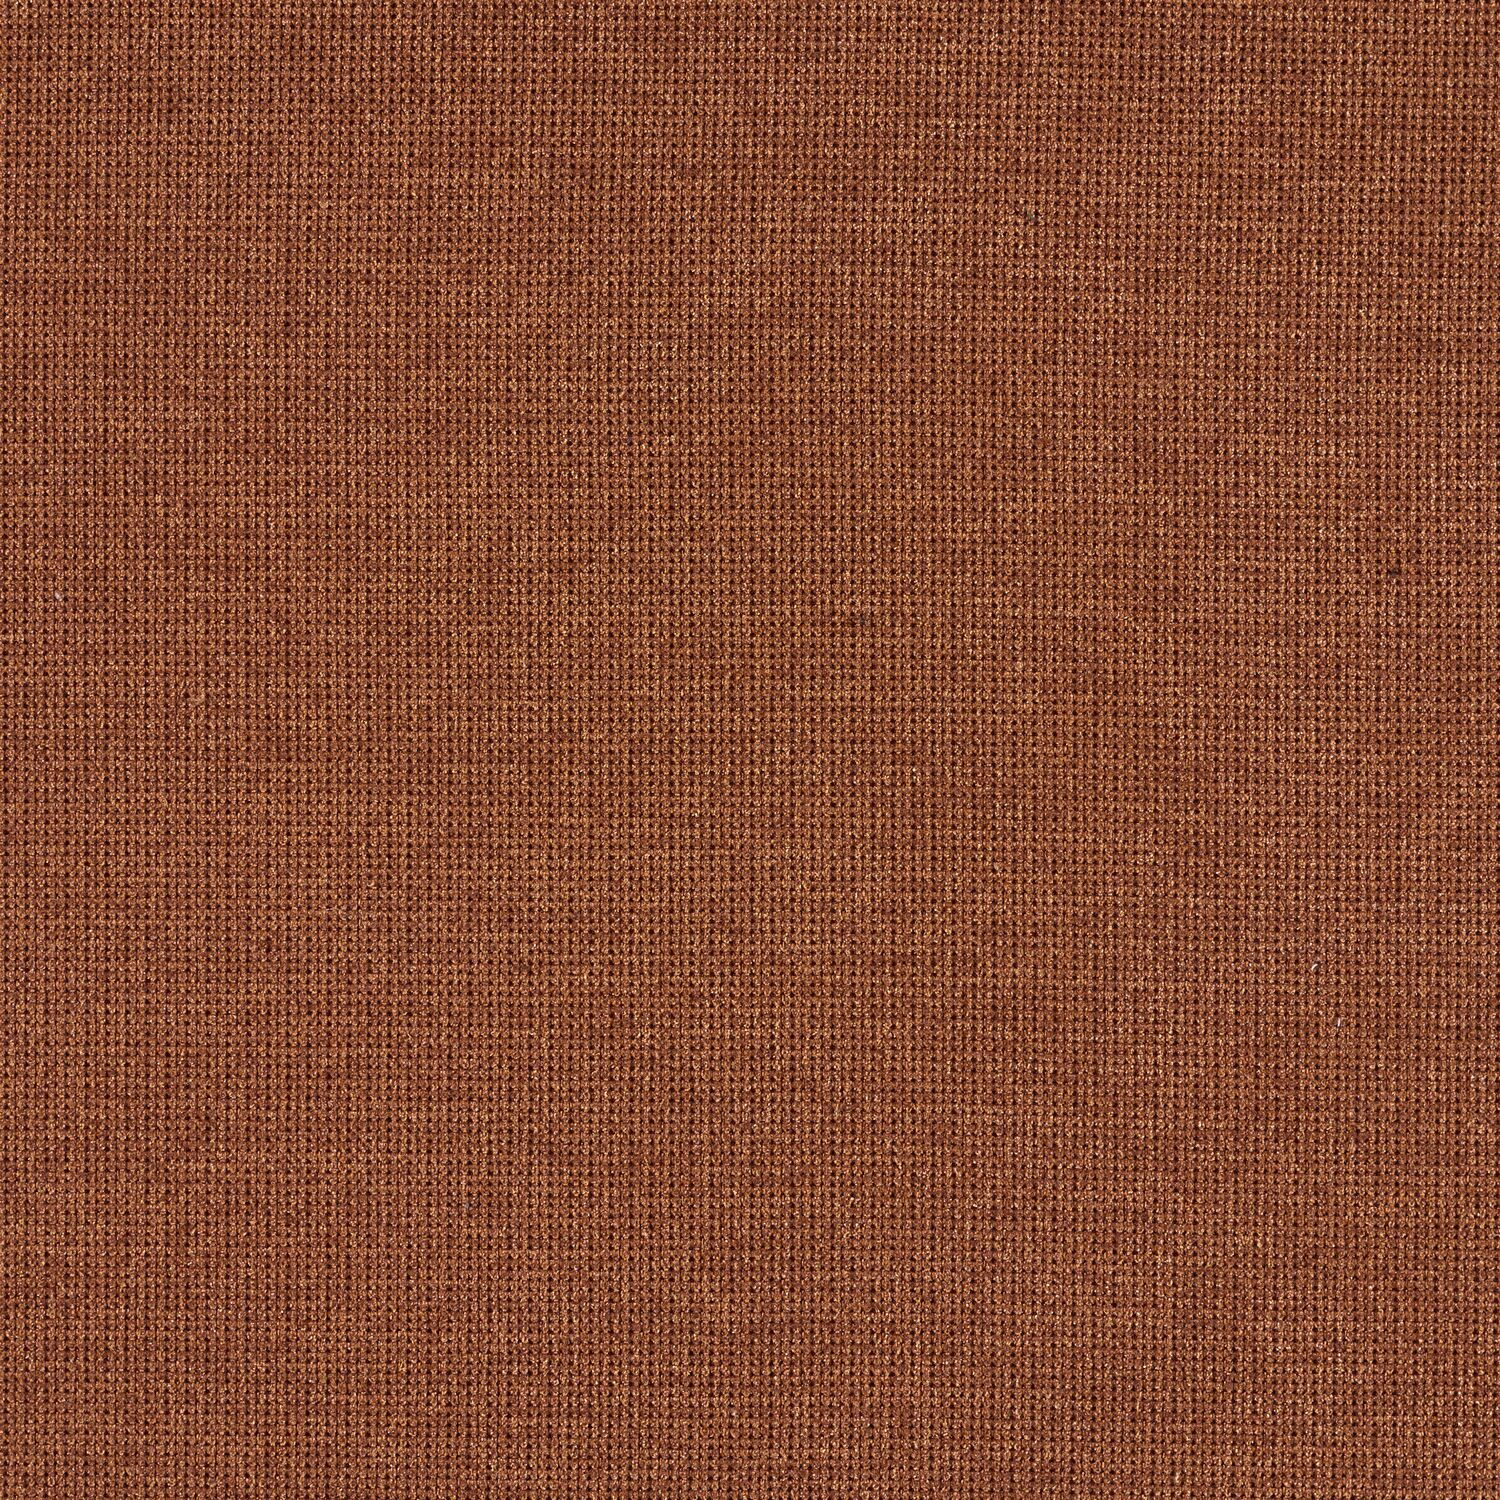 Doyenne - Sienna - 4078 - 11 Tileable Swatches